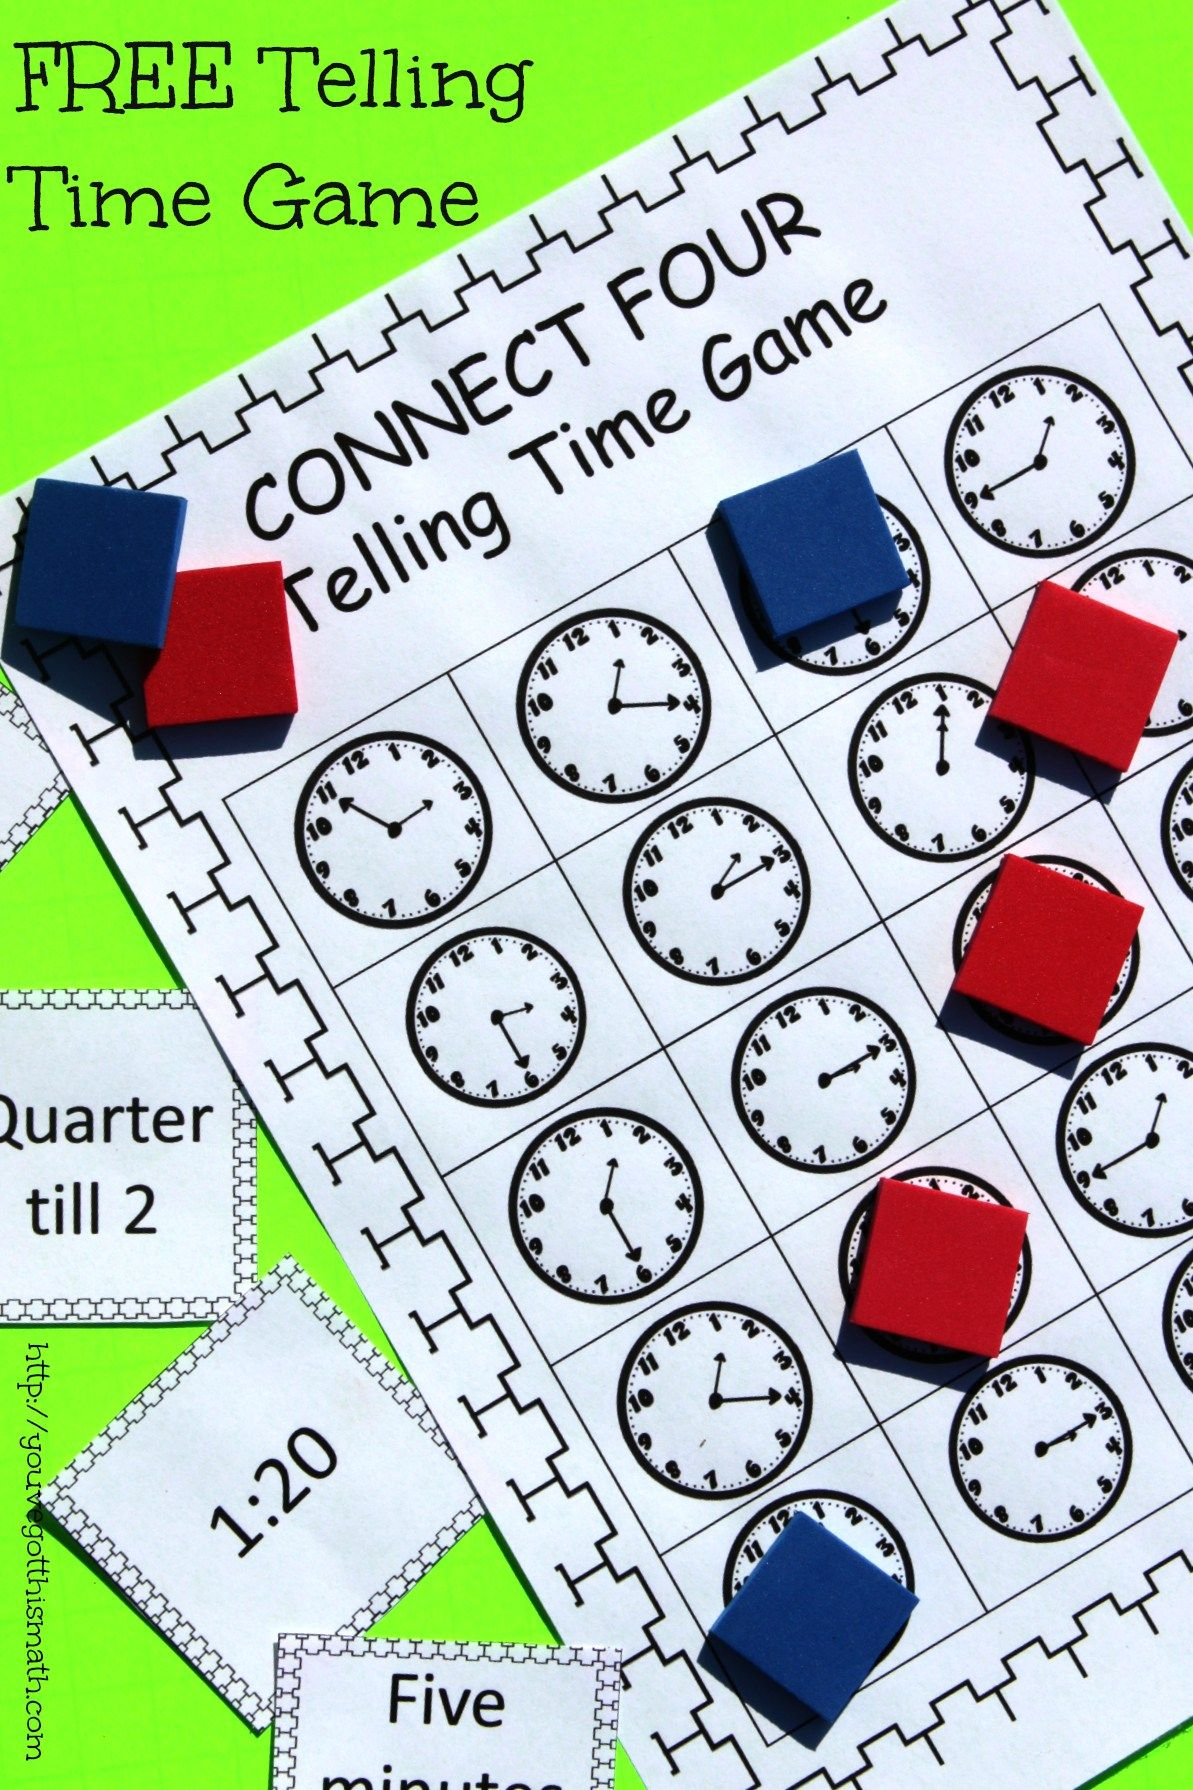 How to Practice Telling Time With A Fun, Easy Game | Pinterest ...